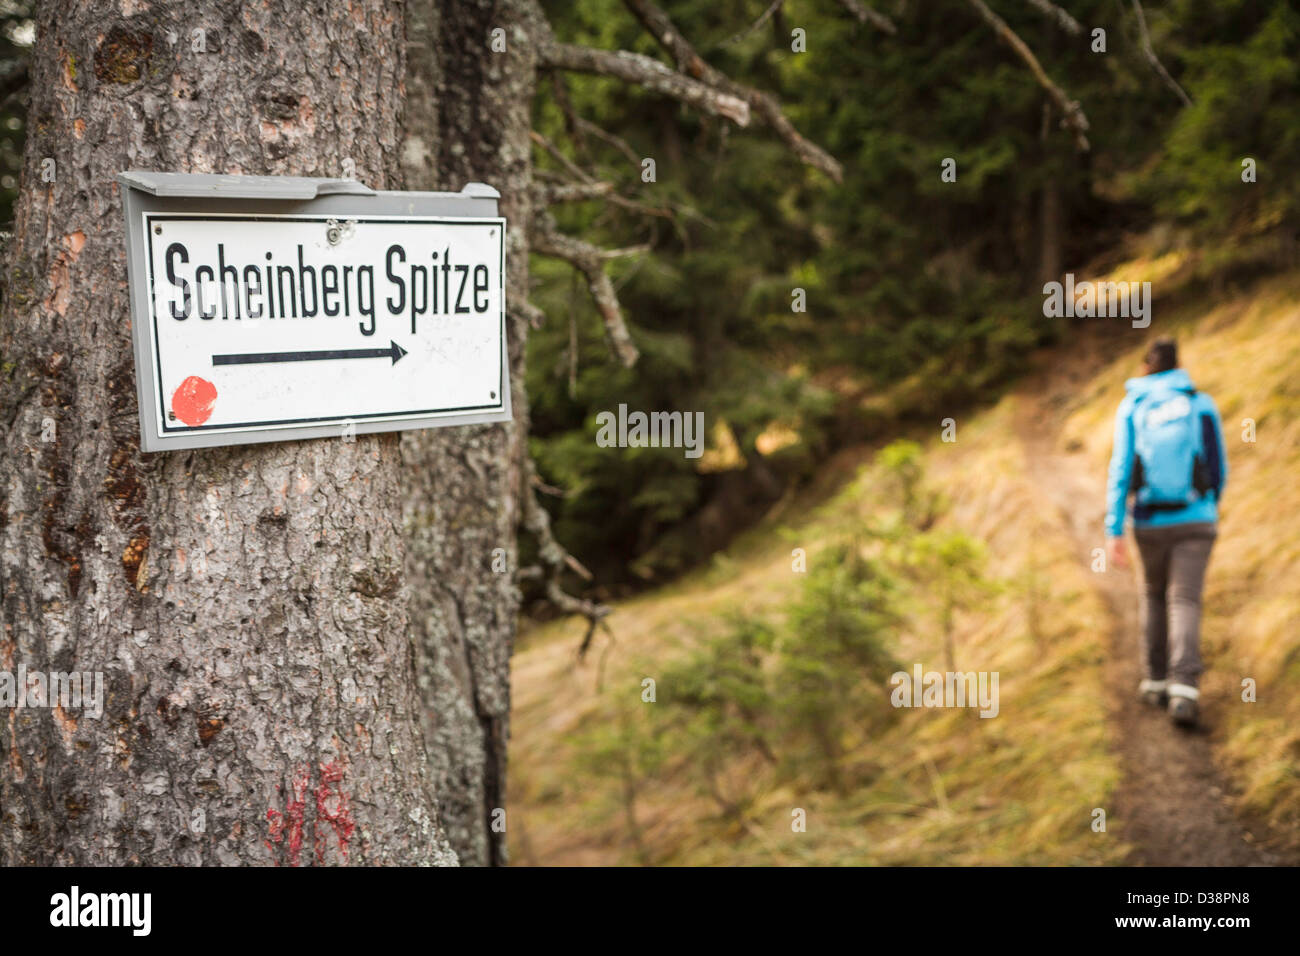 Scheinberg Spitze sign on rural trail - Stock Image